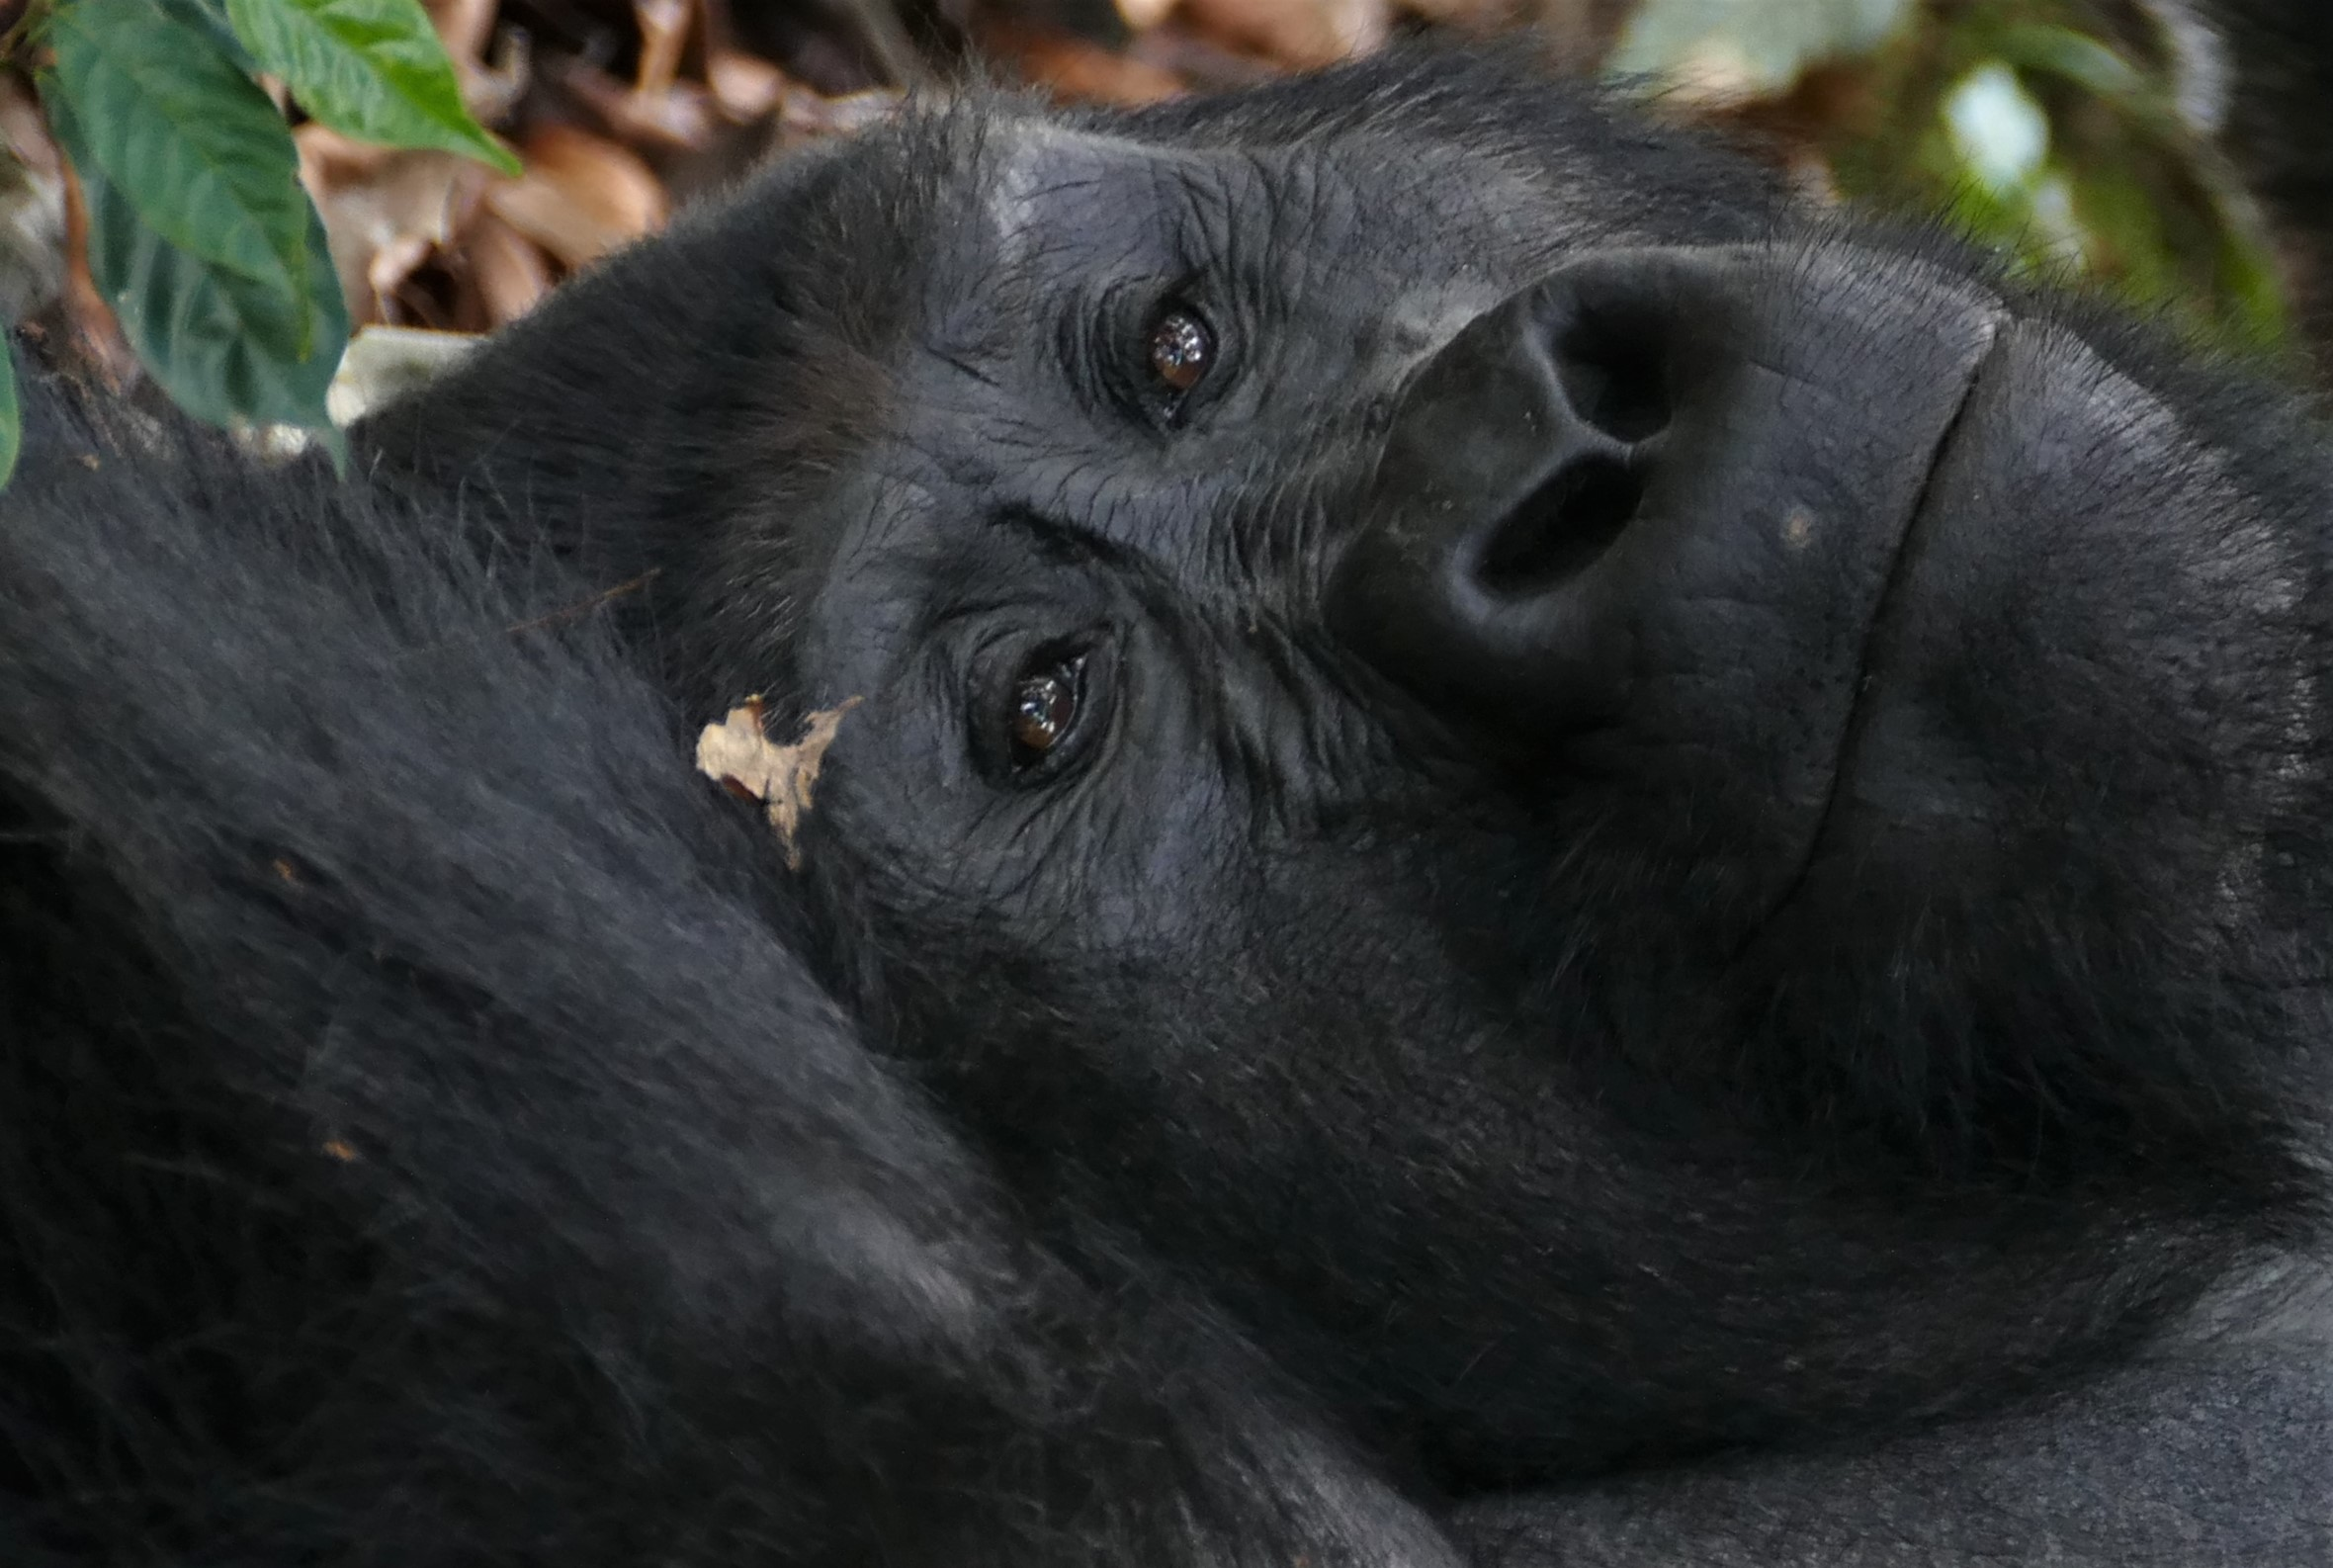 Gorilla daydreaming